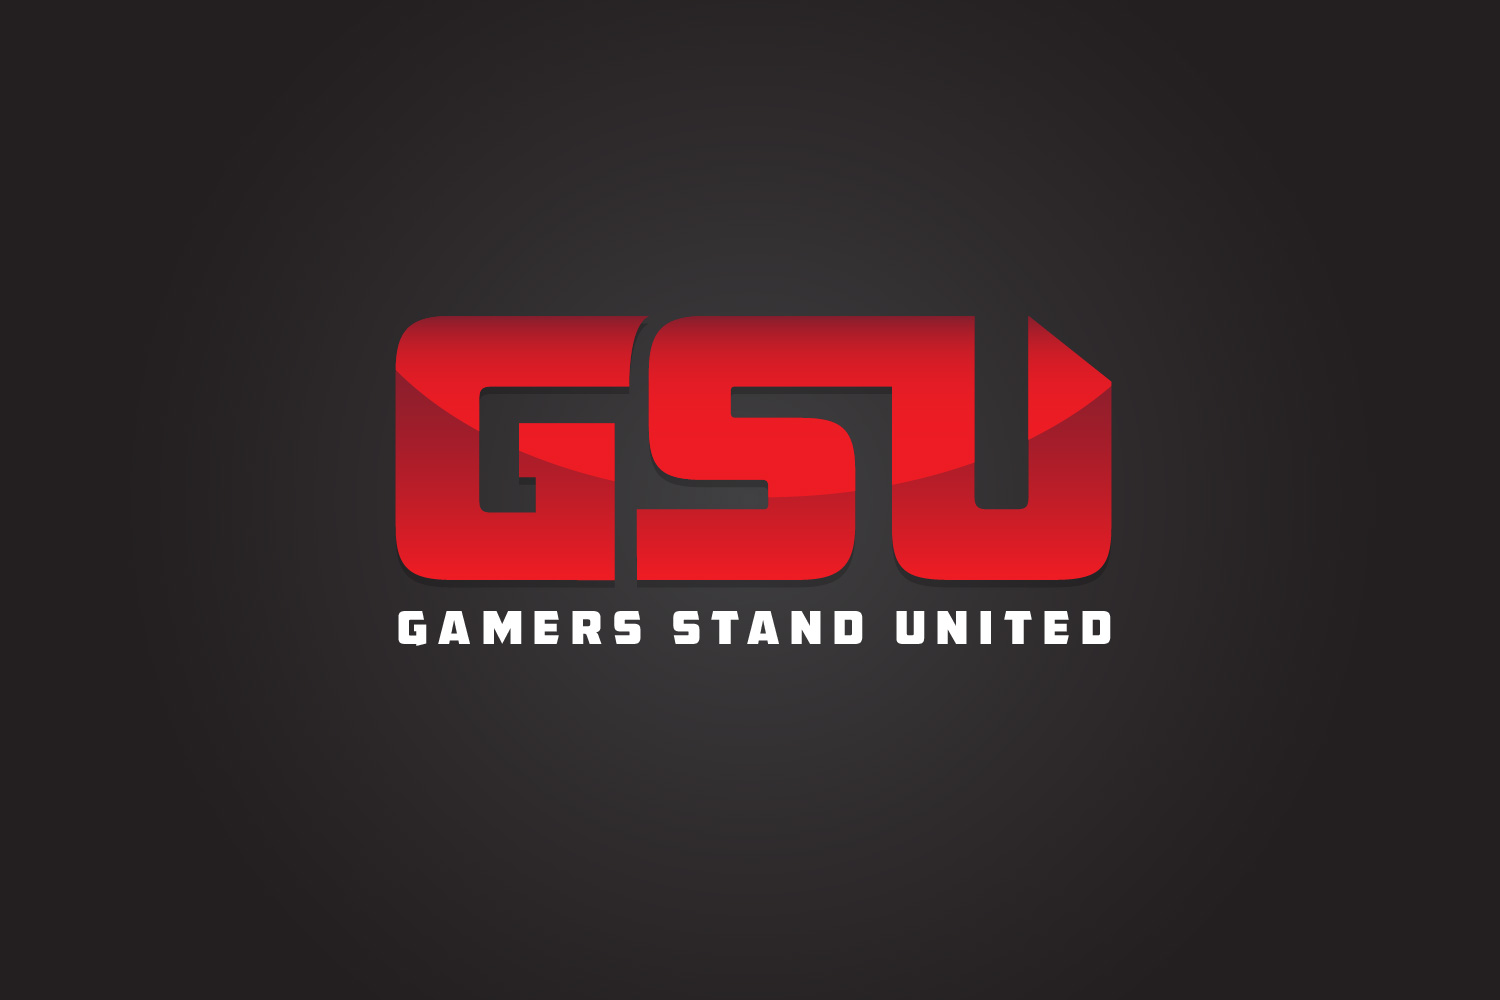 Gamers Stand United – Gaming Clan Logo